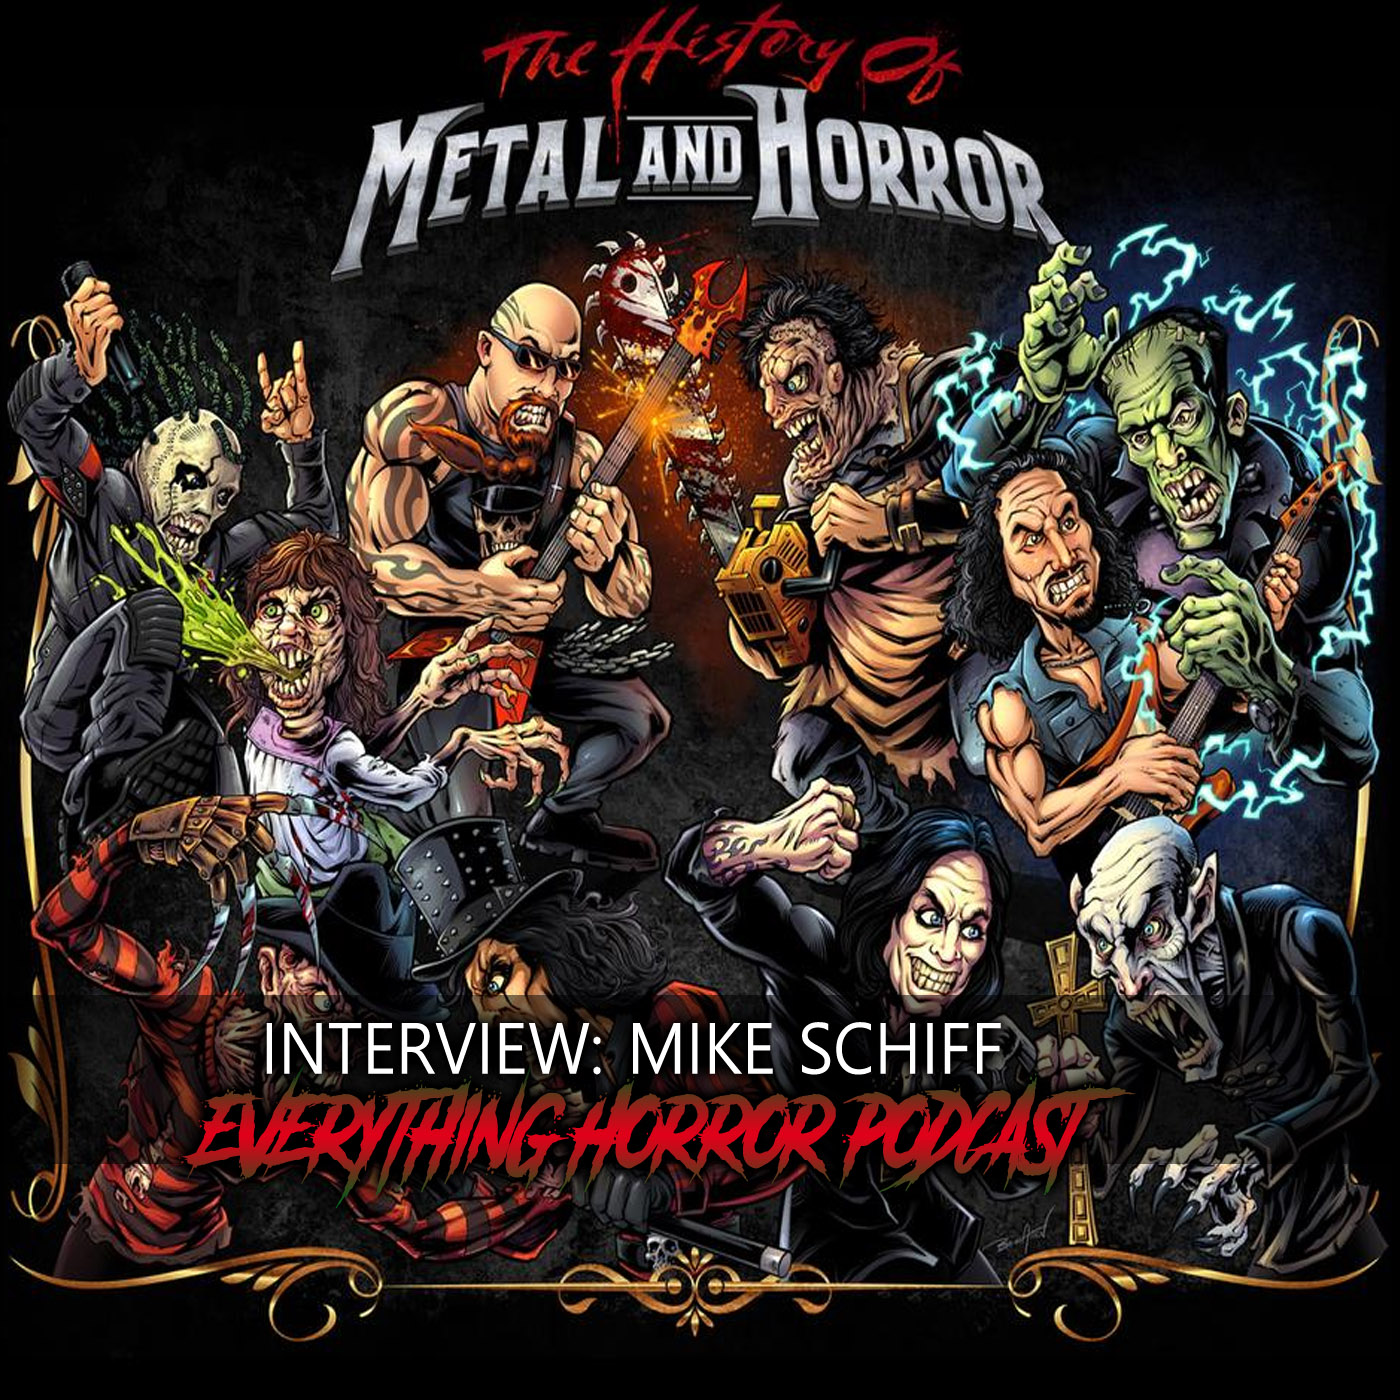 Interview: Mike Schiff | The History of Metal and Horror Documentary